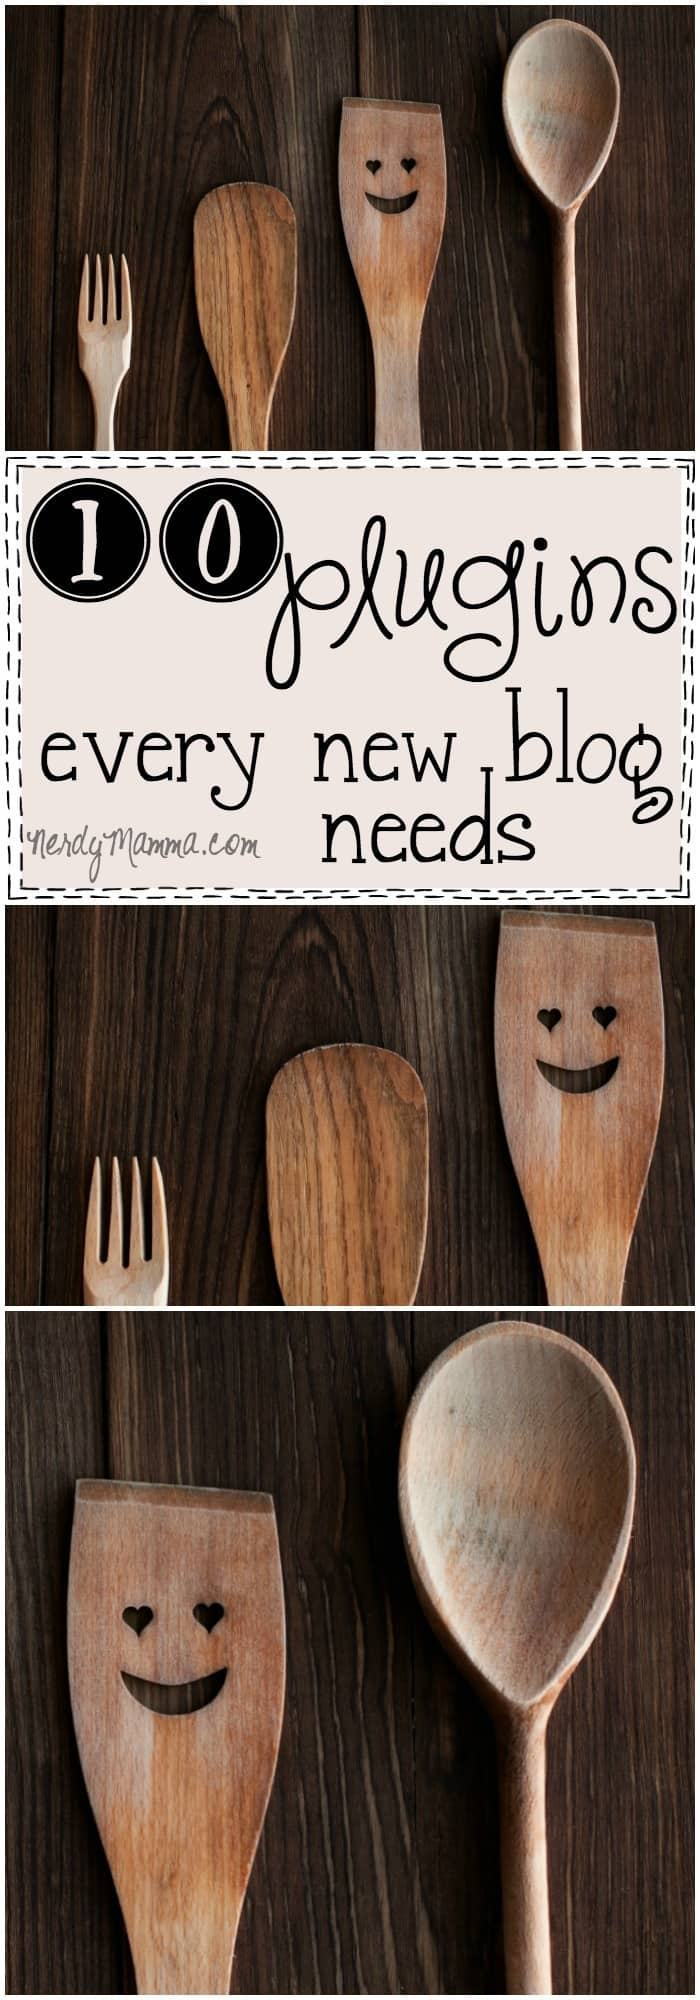 This list of 10 Plugins Every New Blog Needs is so awesome--I wish I'd had it when I first stared blogging. LOL!